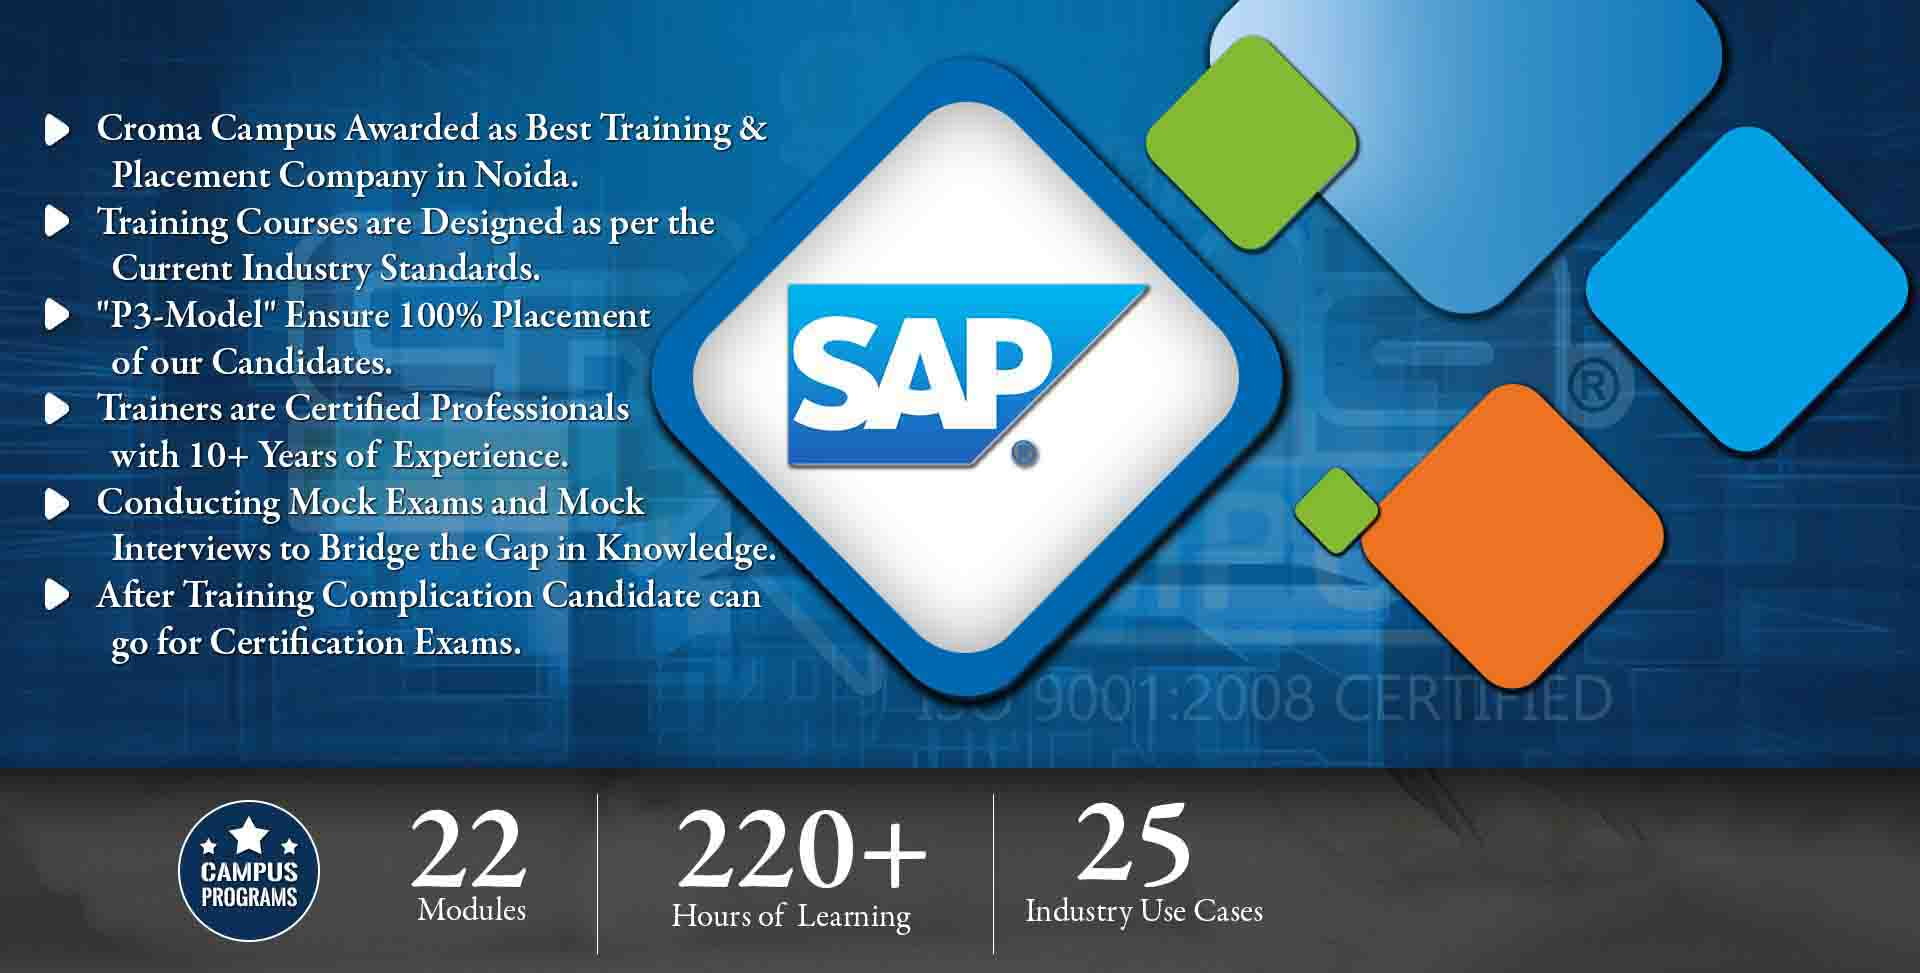 SAP / ERP Training in Delhi NCR- Croma Campus